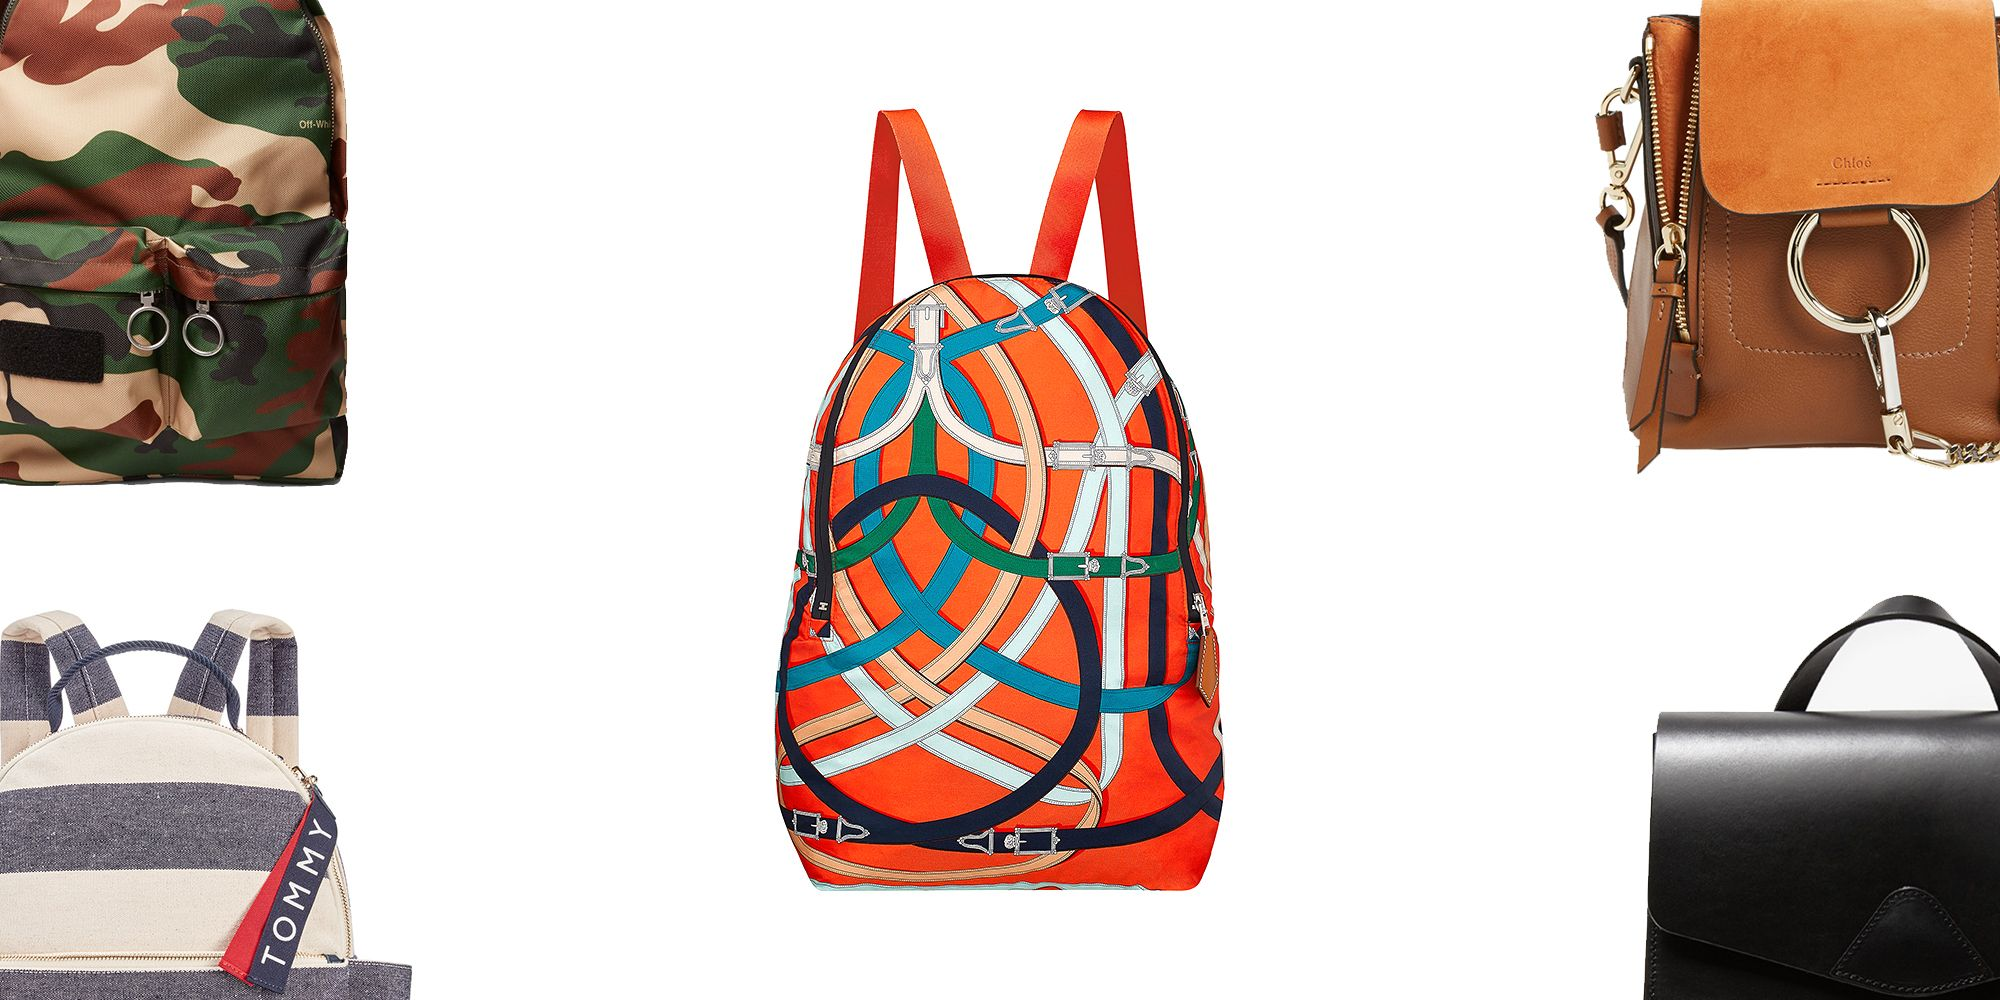 d8c8116a4f56da Best Backpacks for Women 2018 - 15 Backpacks Made for Adults